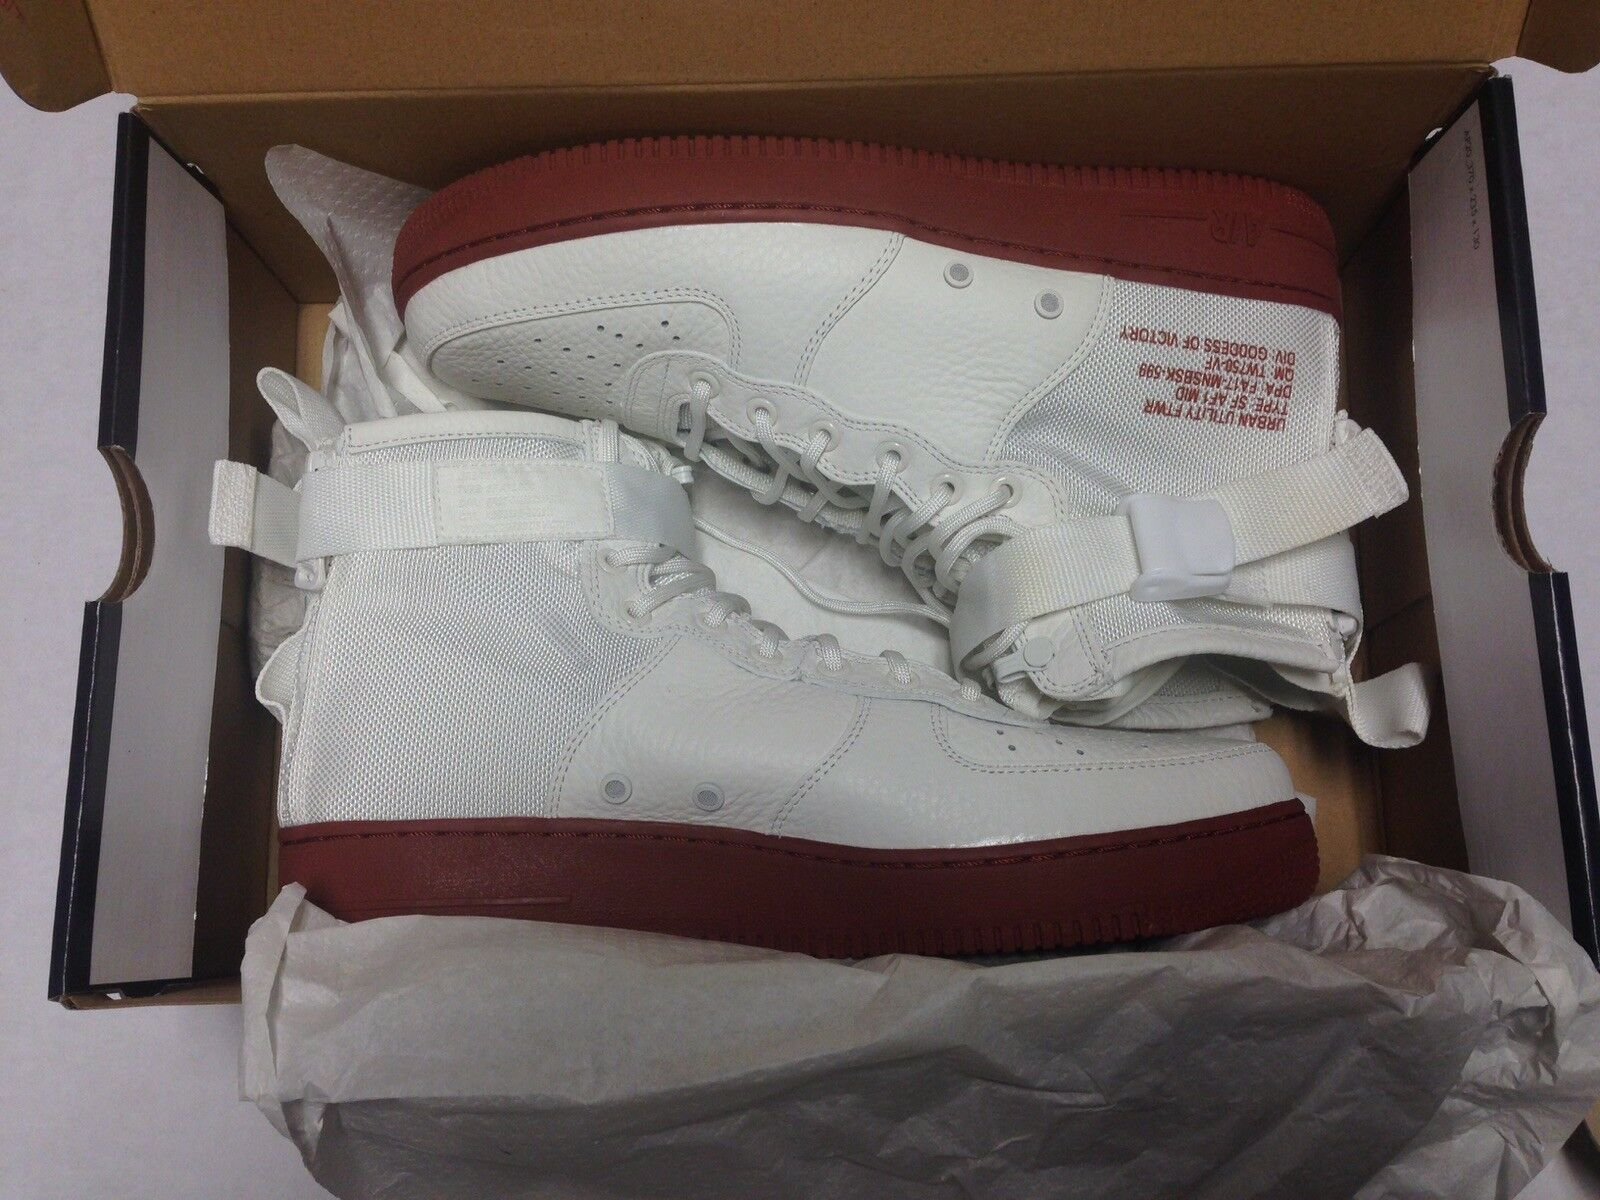 Nike SF AF1 MID Air Force 1 Special Forces Ivory Mars Stone 917753-100 SZ 11